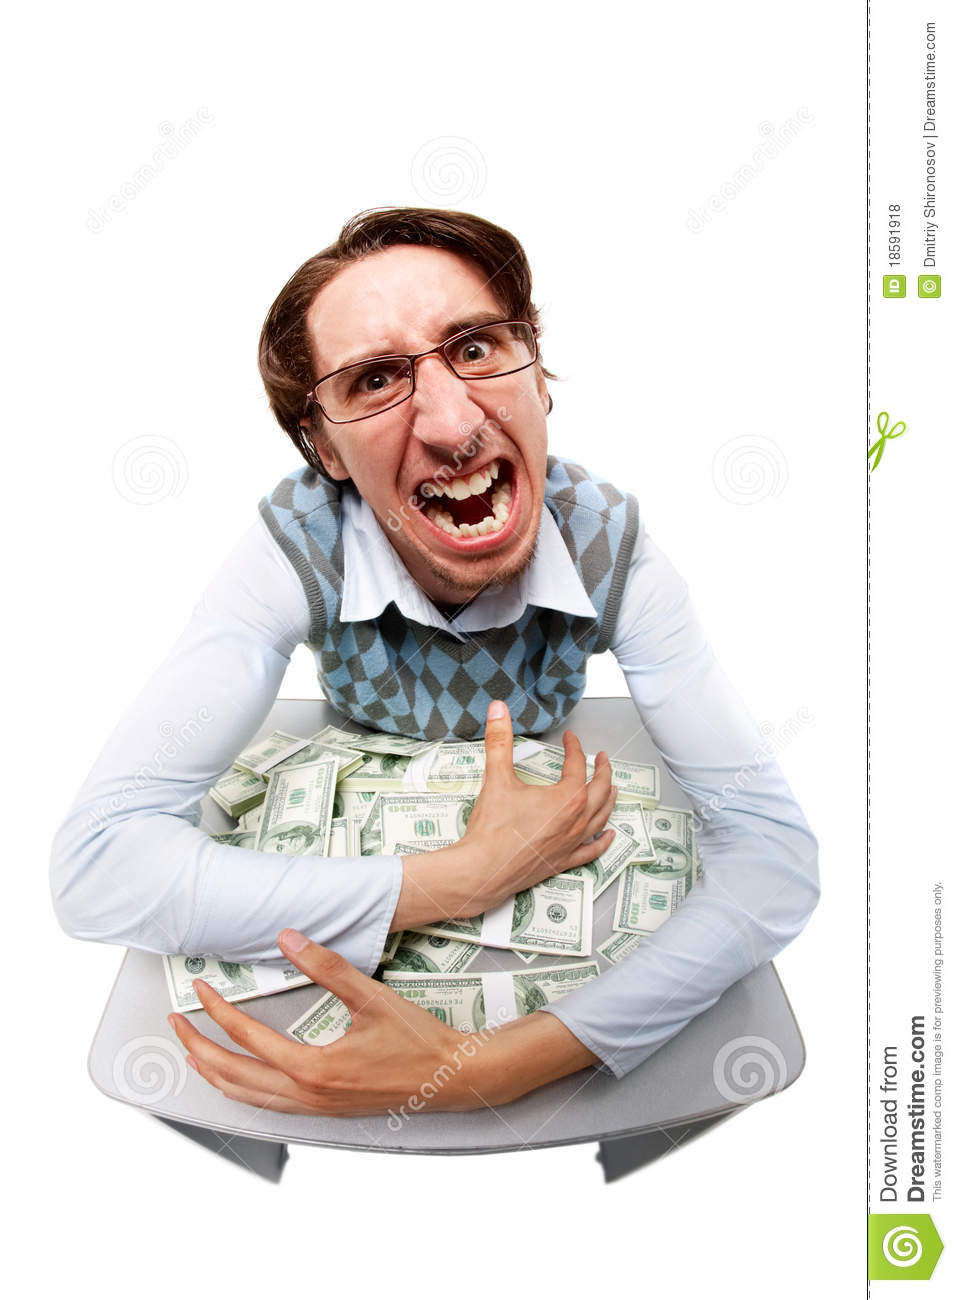 greedy images greedy man stock photo image of hand greedy bucks 2270